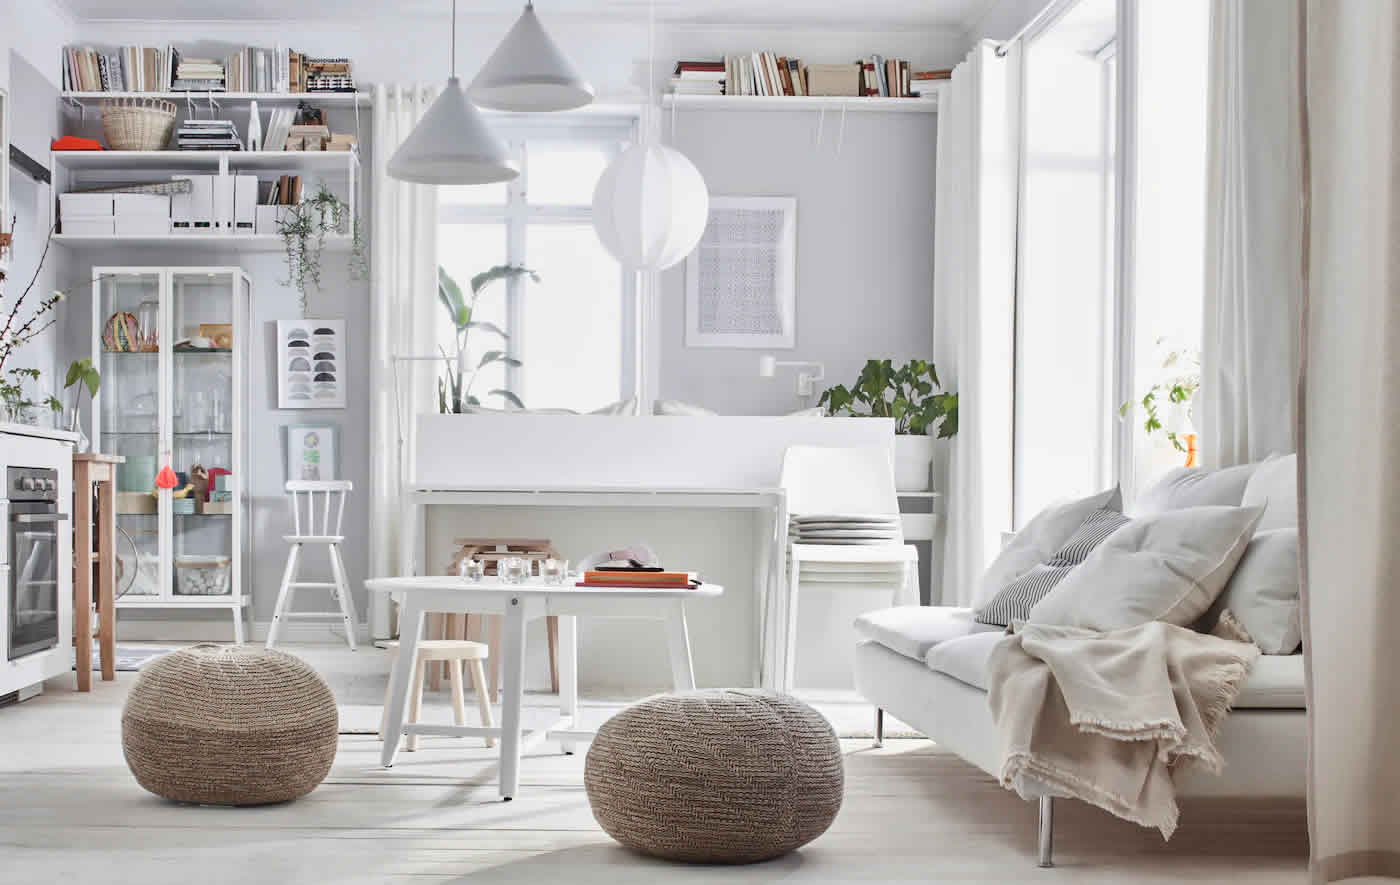 IKEA Ideas - The everything room